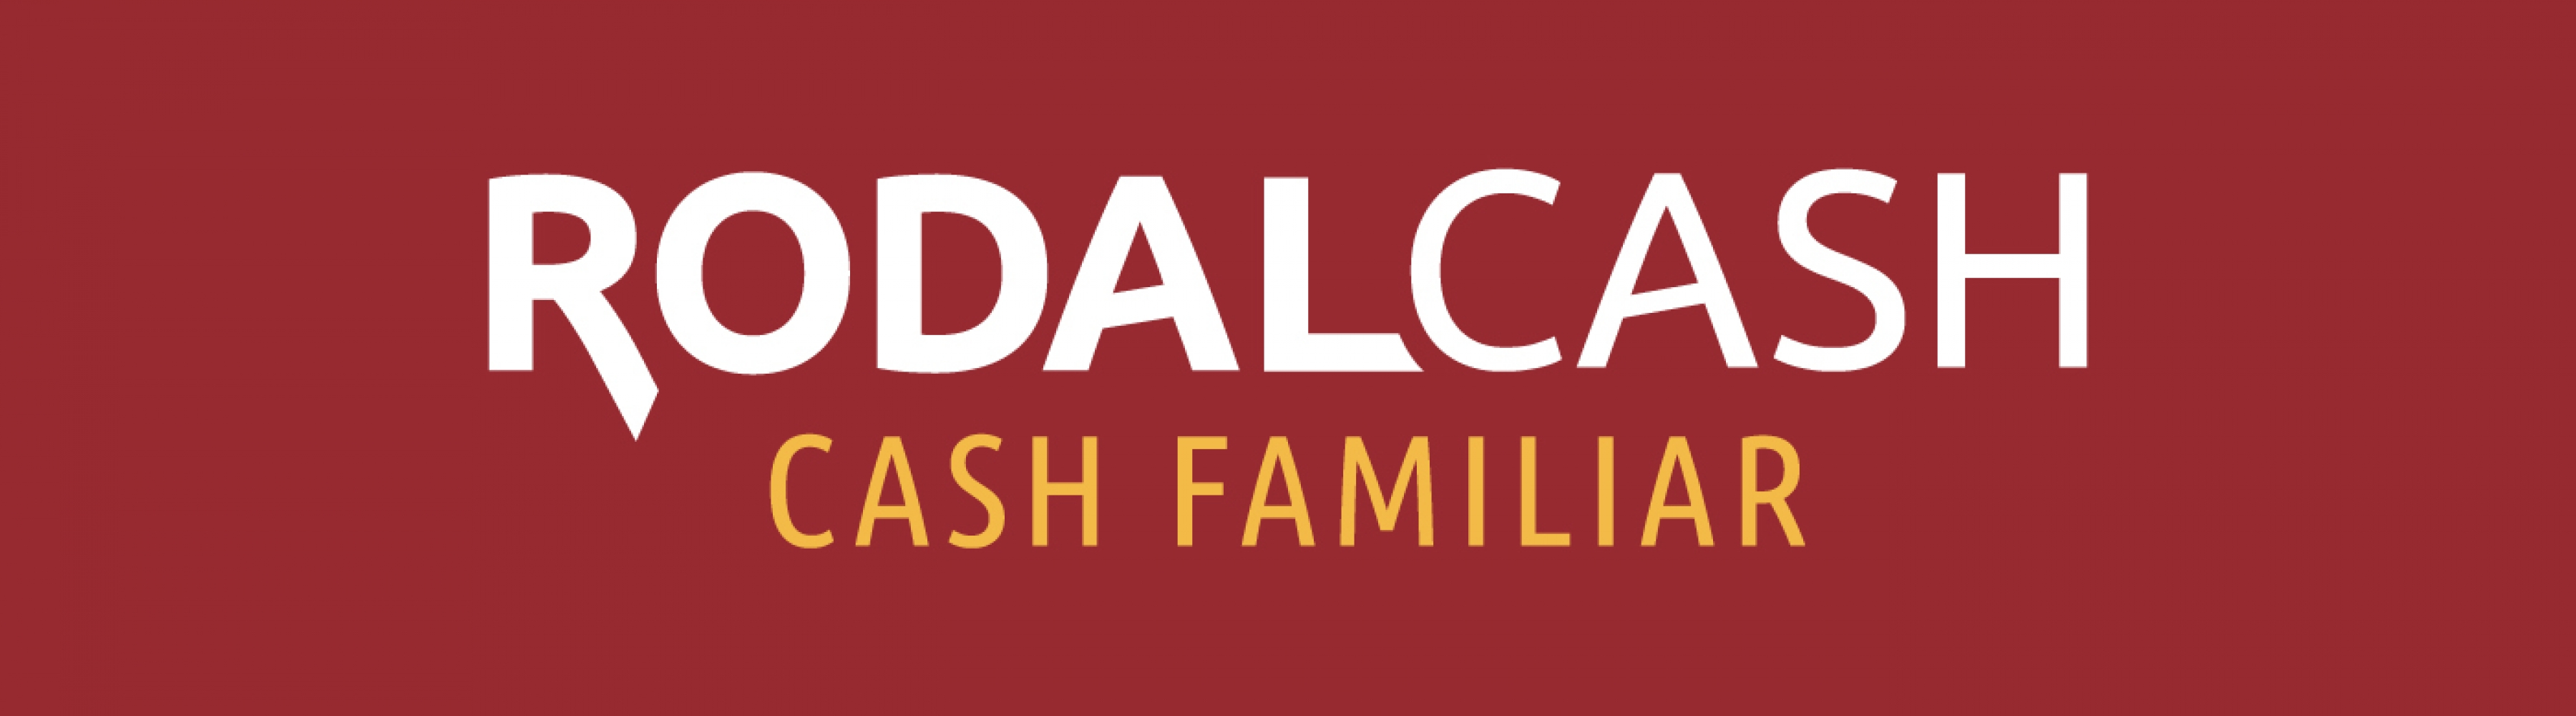 logo registro_RodalCash